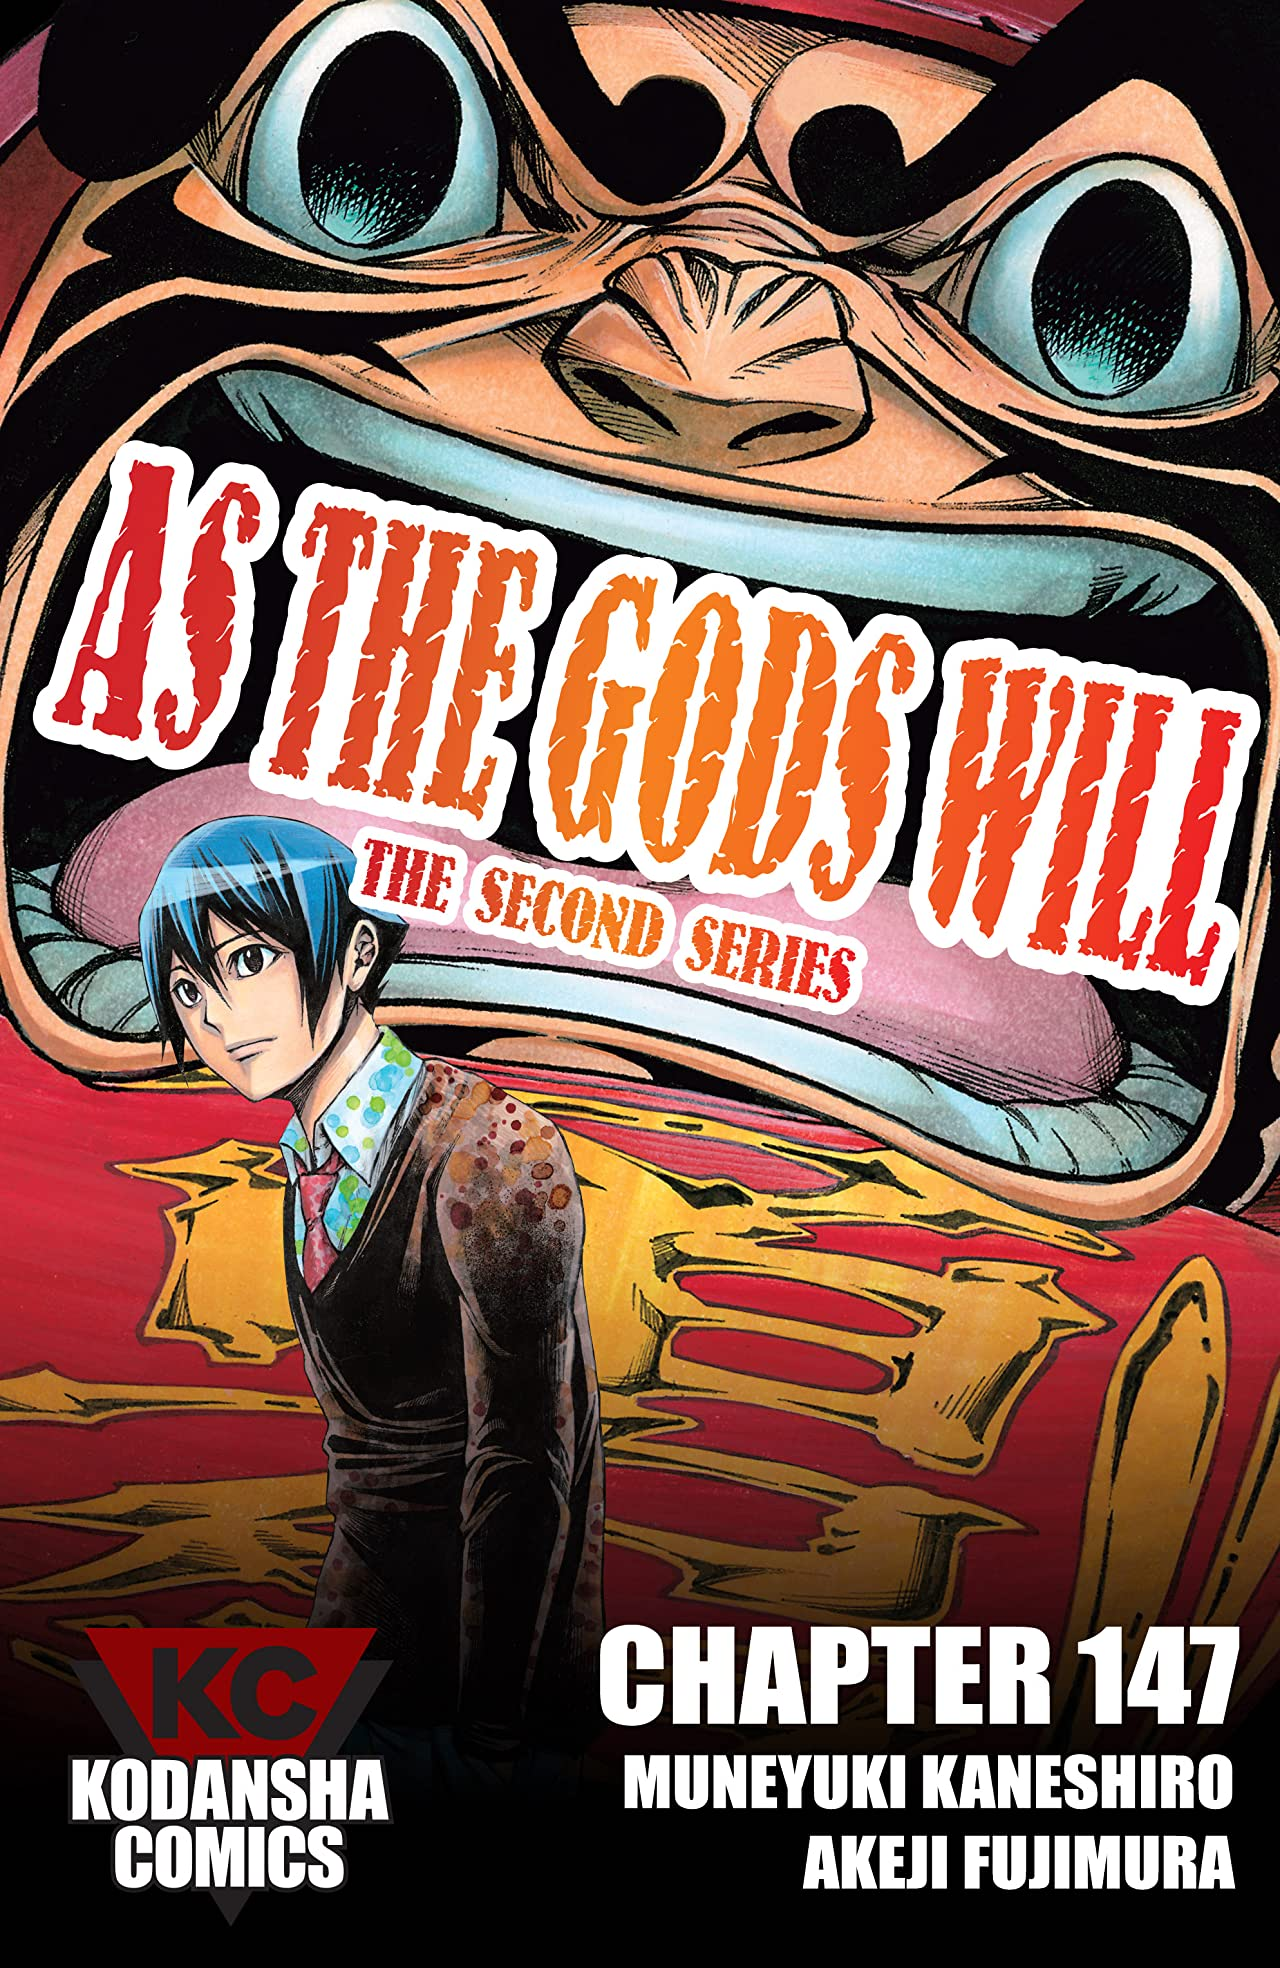 As The Gods Will: The Second Series #147